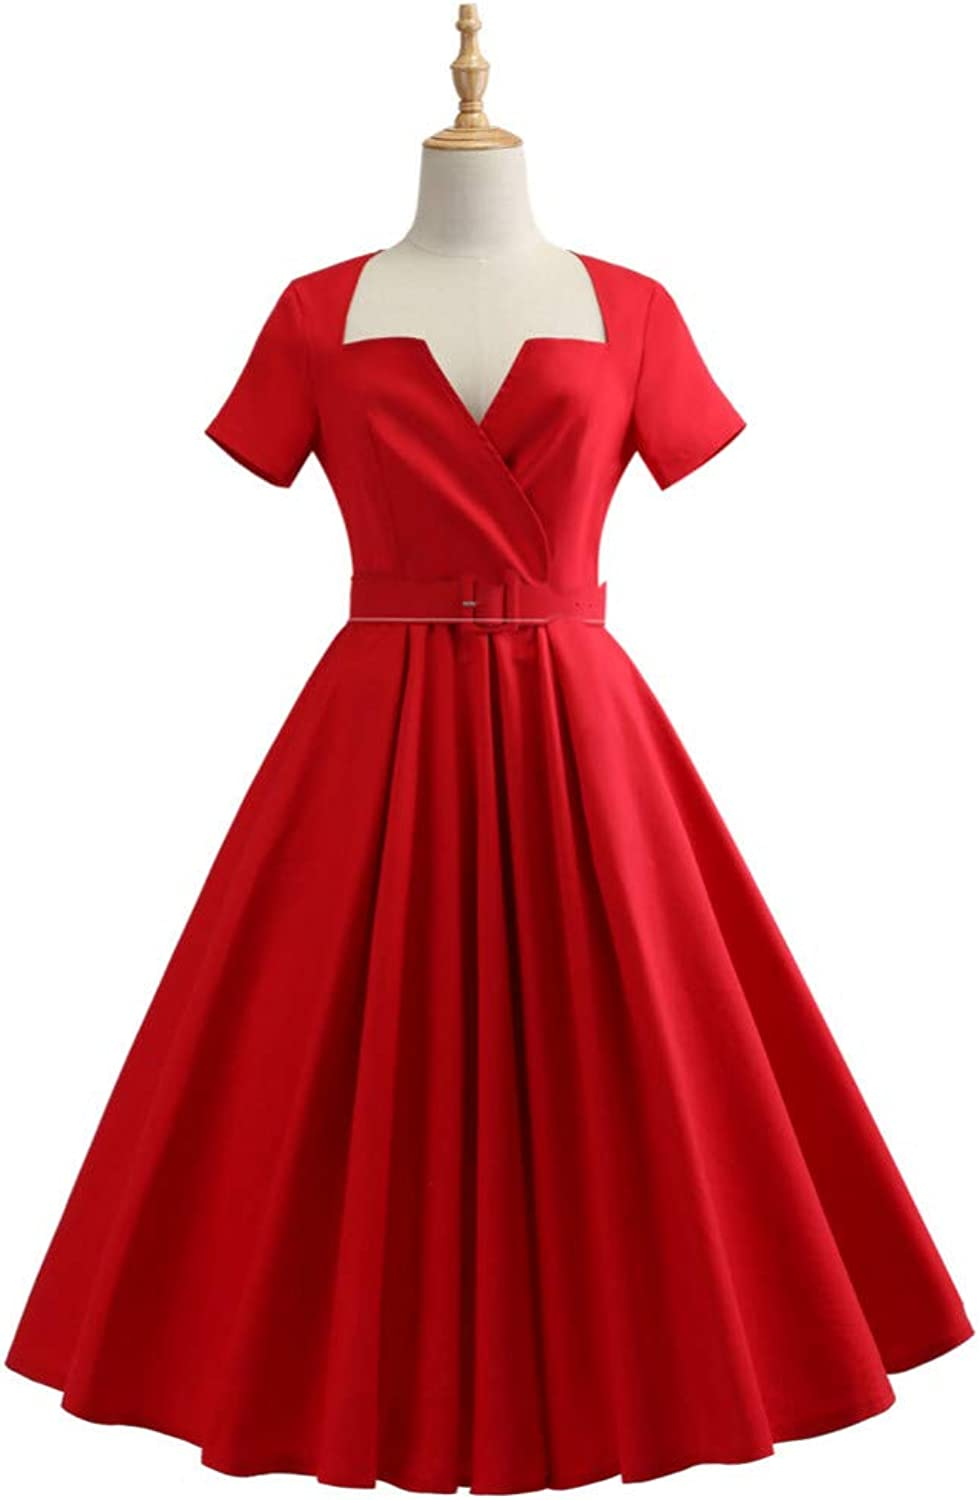 WDBXN Elegant Hepburn Vintage Dress Women Summer Autumn Solid Dress Cotton V-Neck Belt Swing Party Dresses